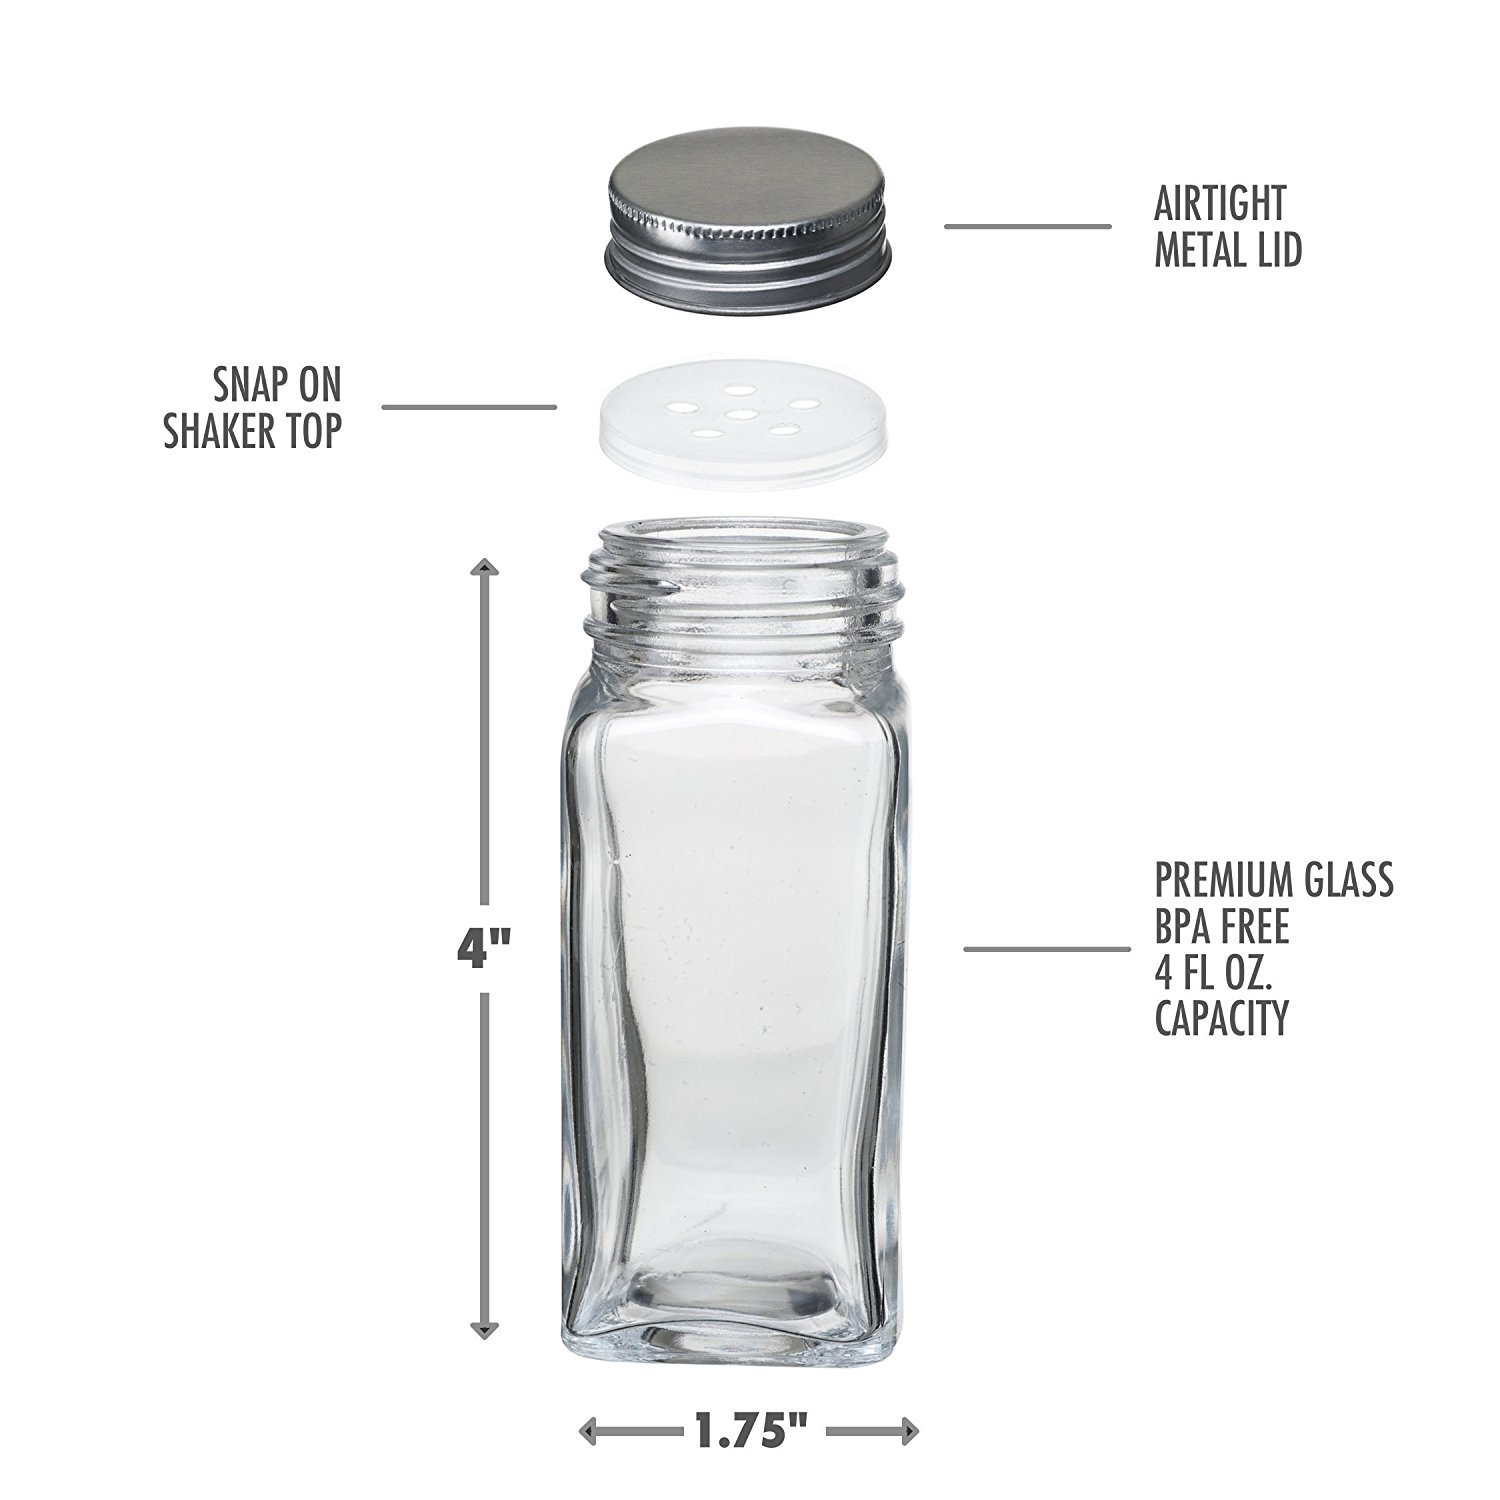 4 Ounce Capacity 6 Set of 6 pvspj46 Square Glass Spice Jars with Shaker Tops By Premium Vials Chalkboard Labels /& Pen Funnel and Airtight Silver Metal Lids